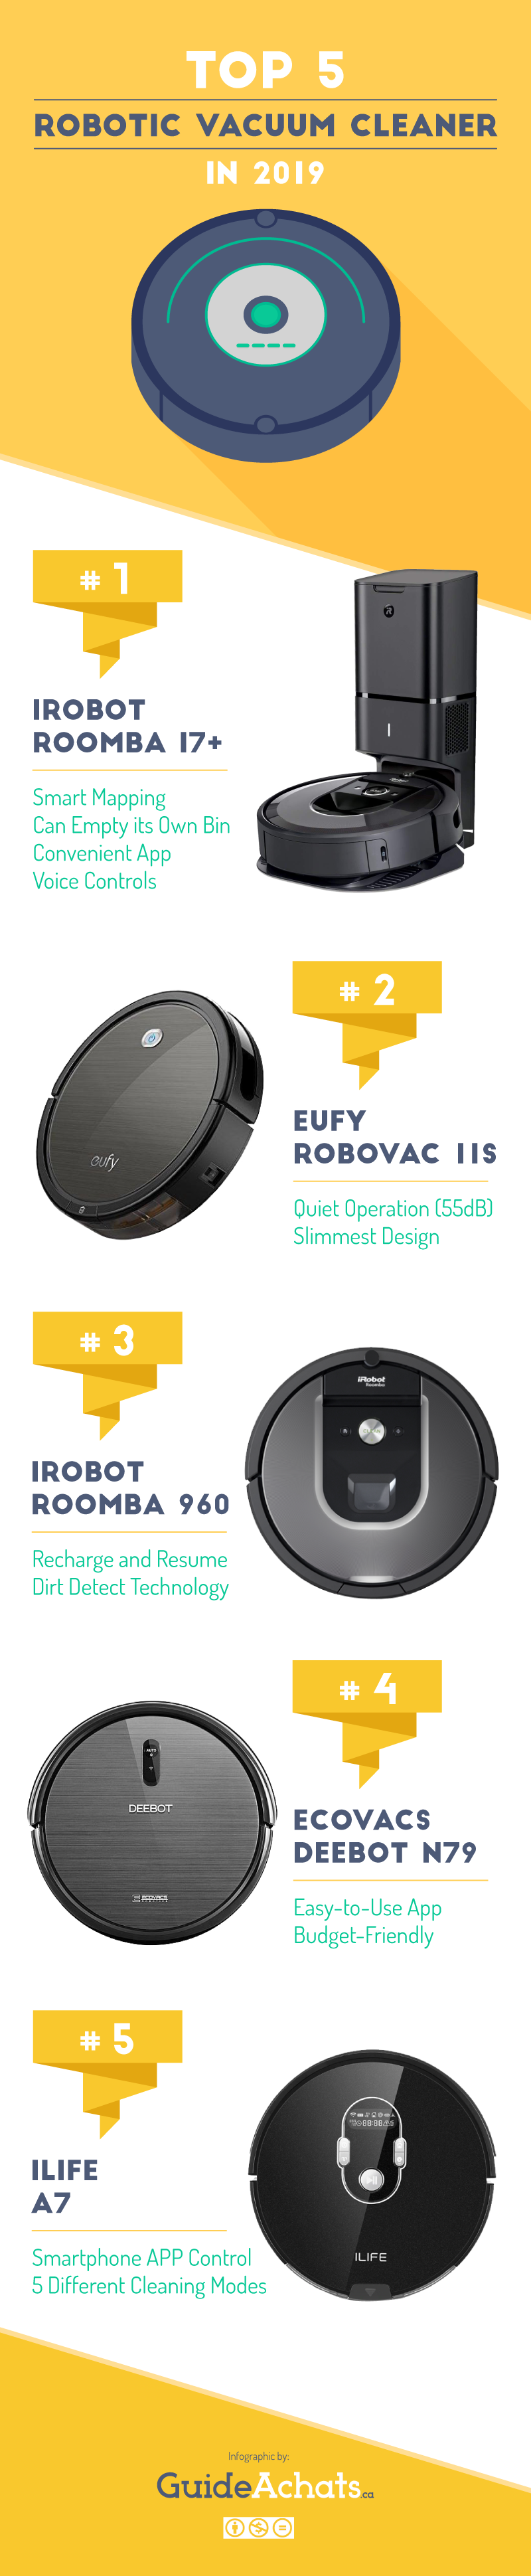 Best Robot Vacuums in 2019